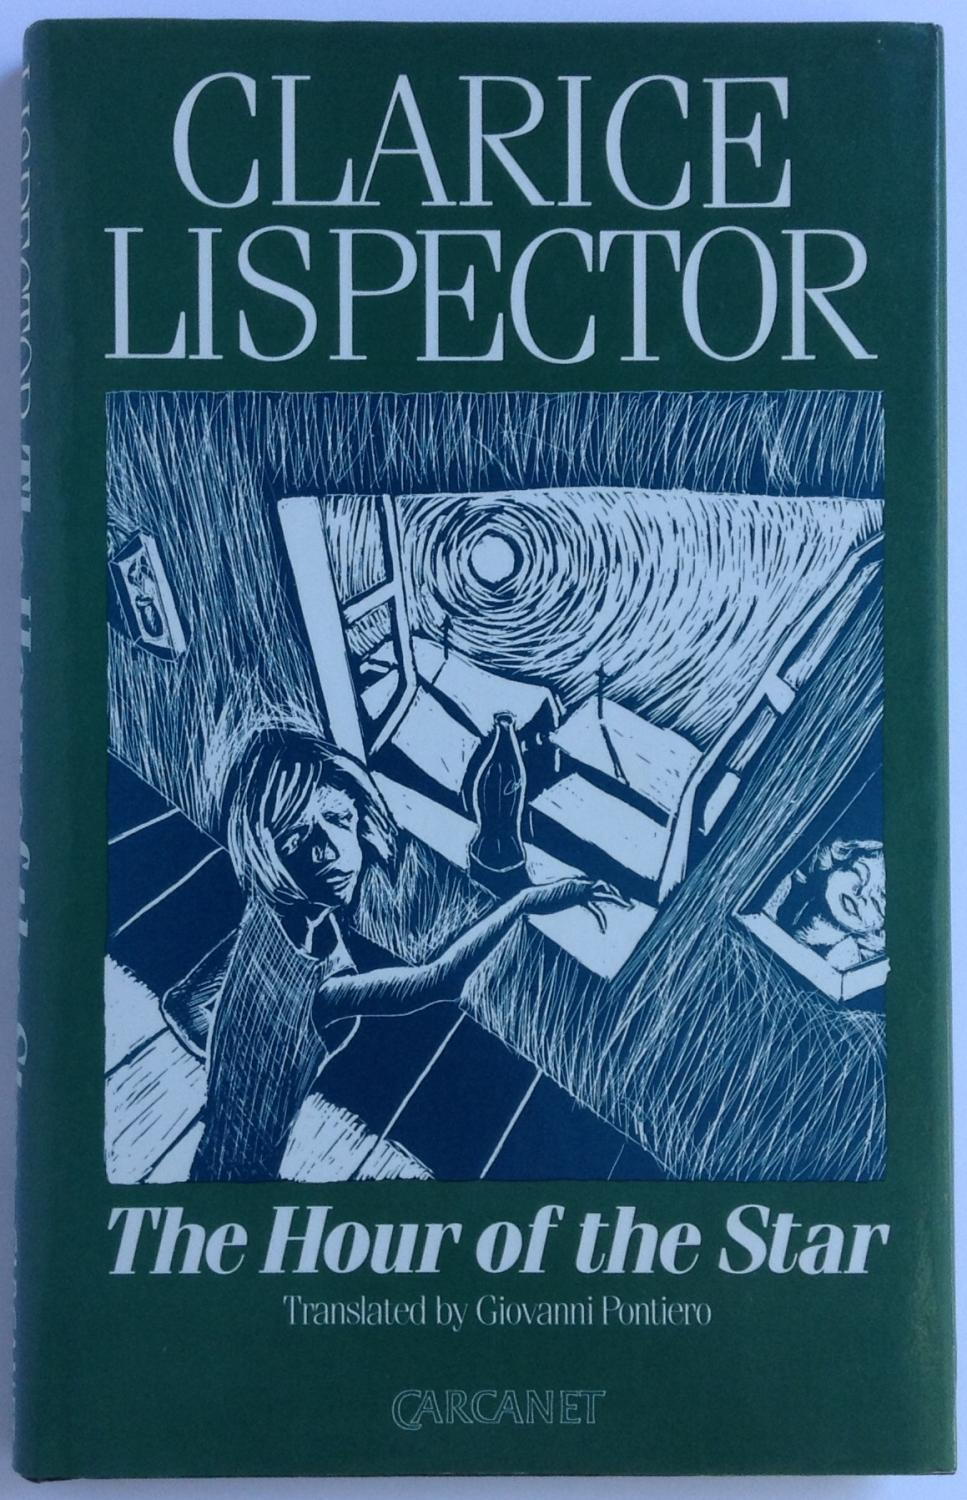 Lindsay Book Review | 'The Hour of the Star': A Philosophical and Piercing Introduction to Brazilian Literature